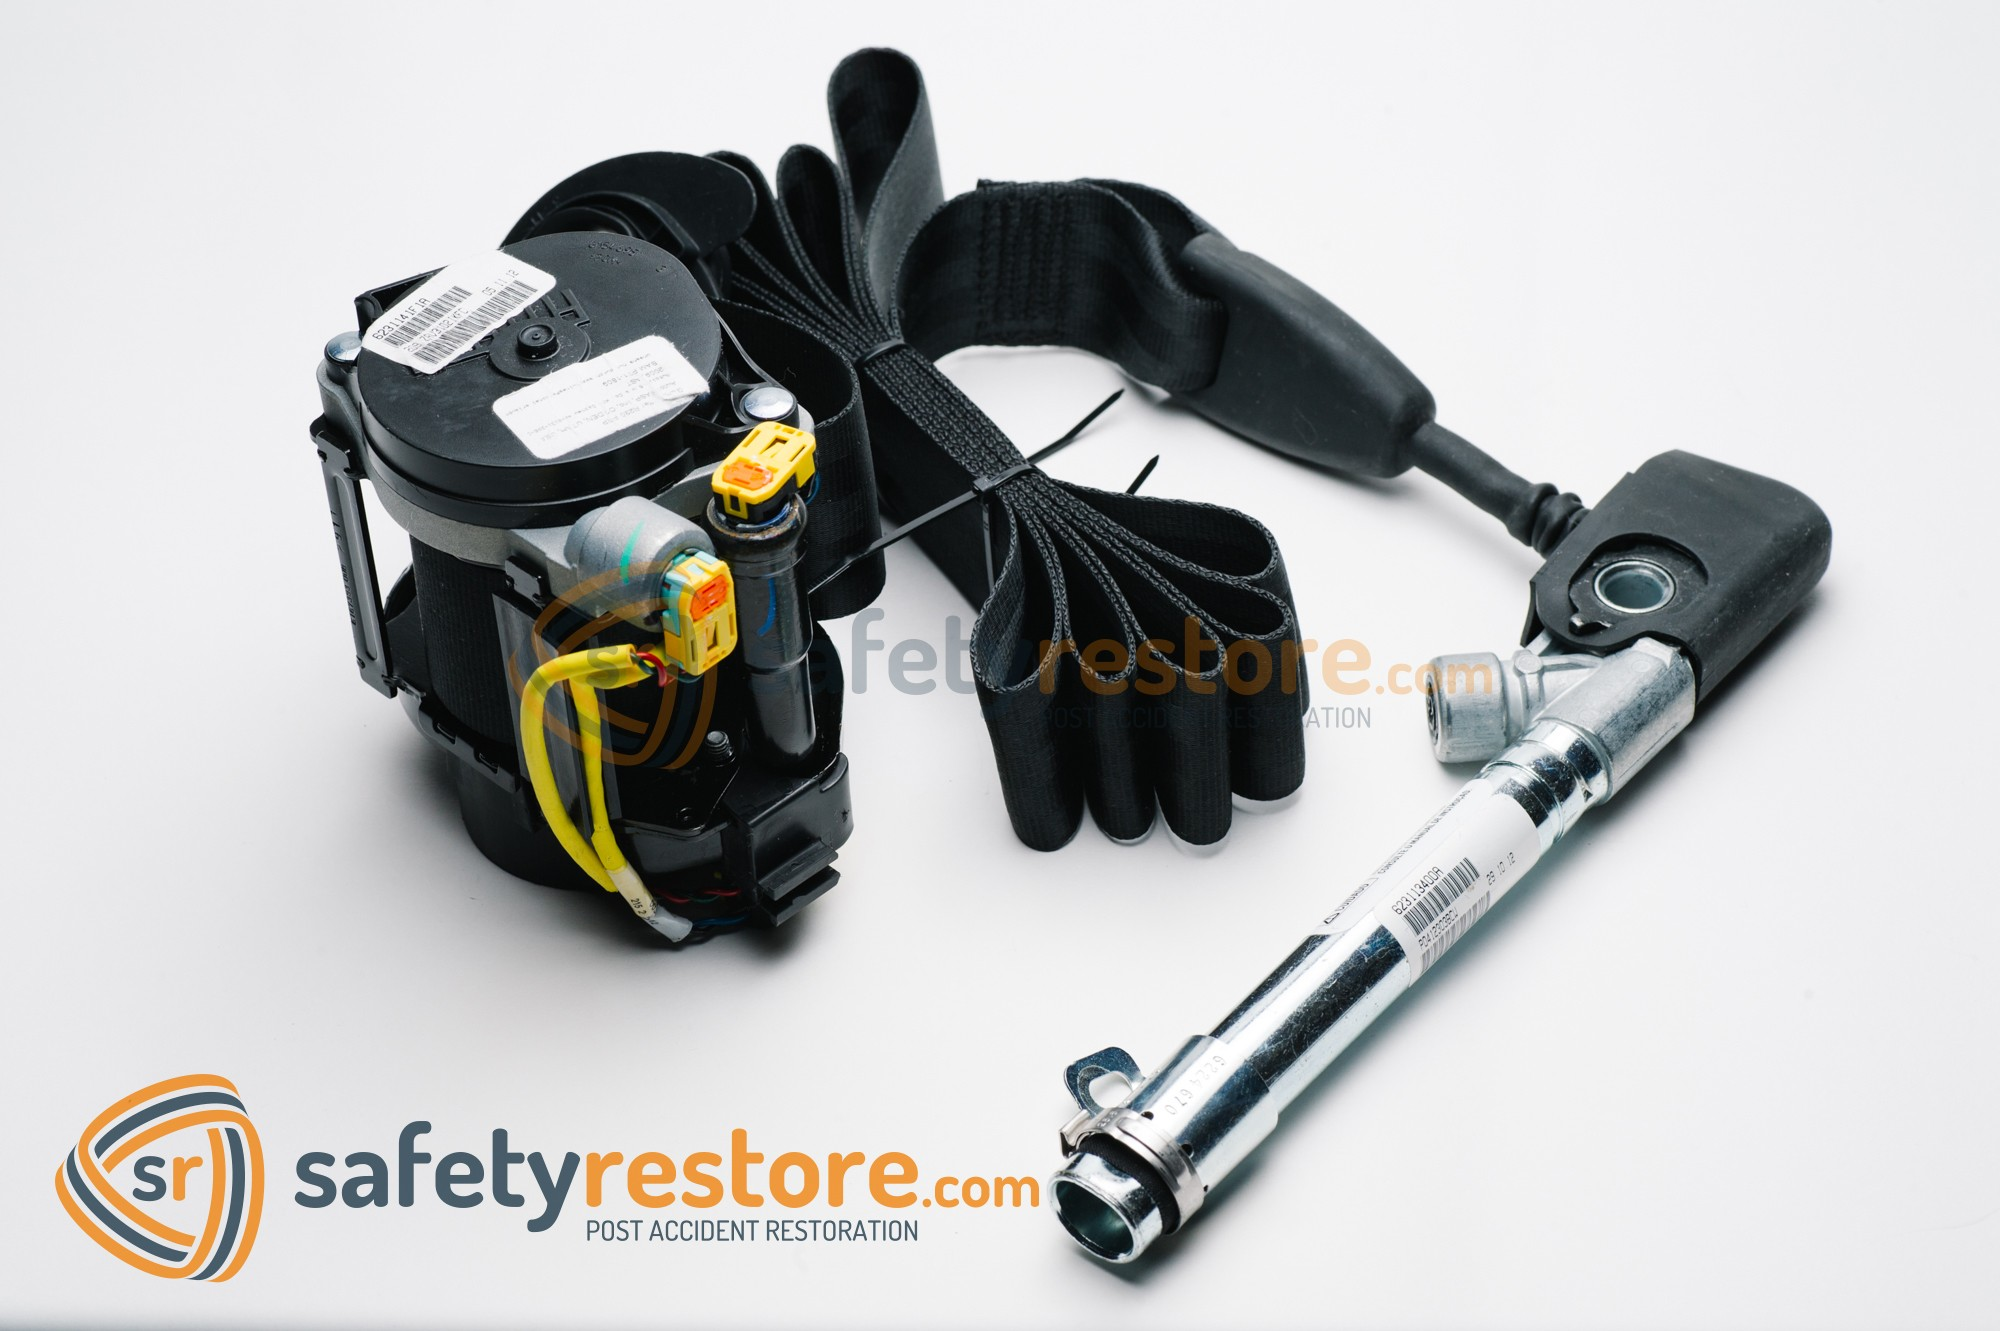 Seat Belt Replacement Parts : Safety restore airbag reset seat belt replacement repair